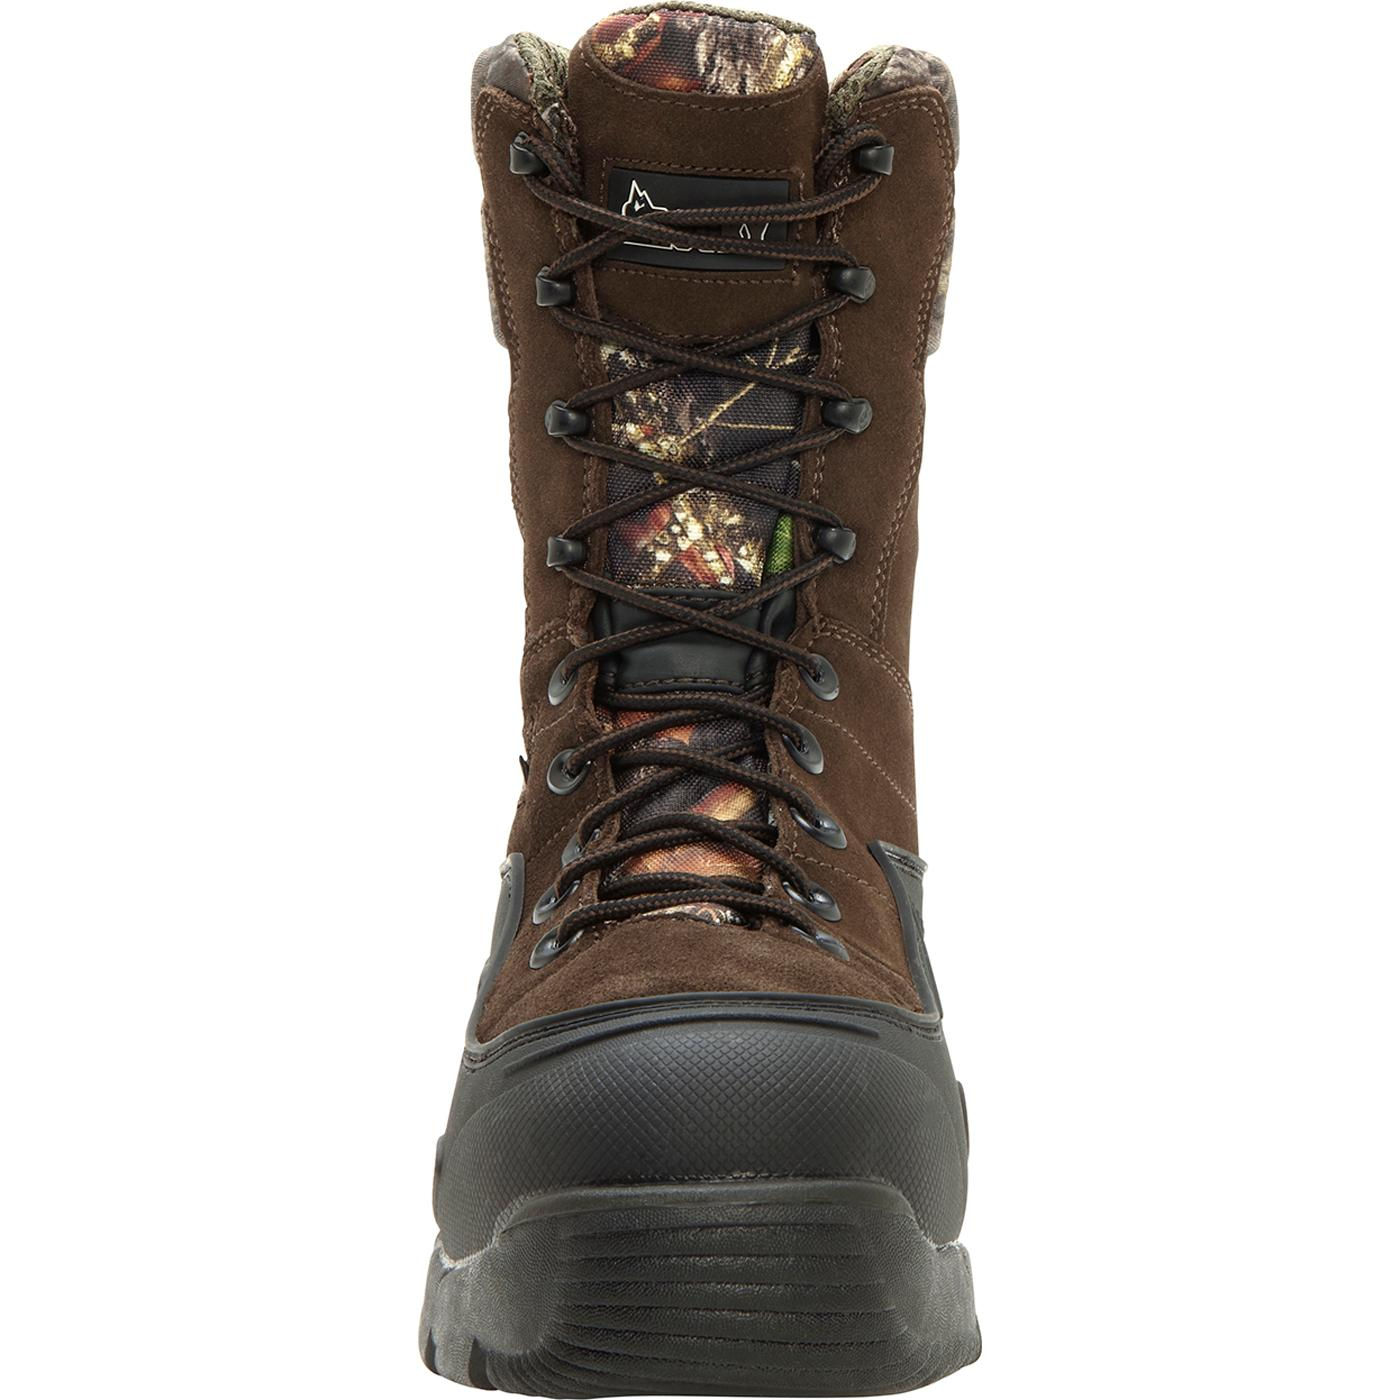 Rocky blizzardstalker pro mens waterproof insulated boots images solutioingenieria Choice Image